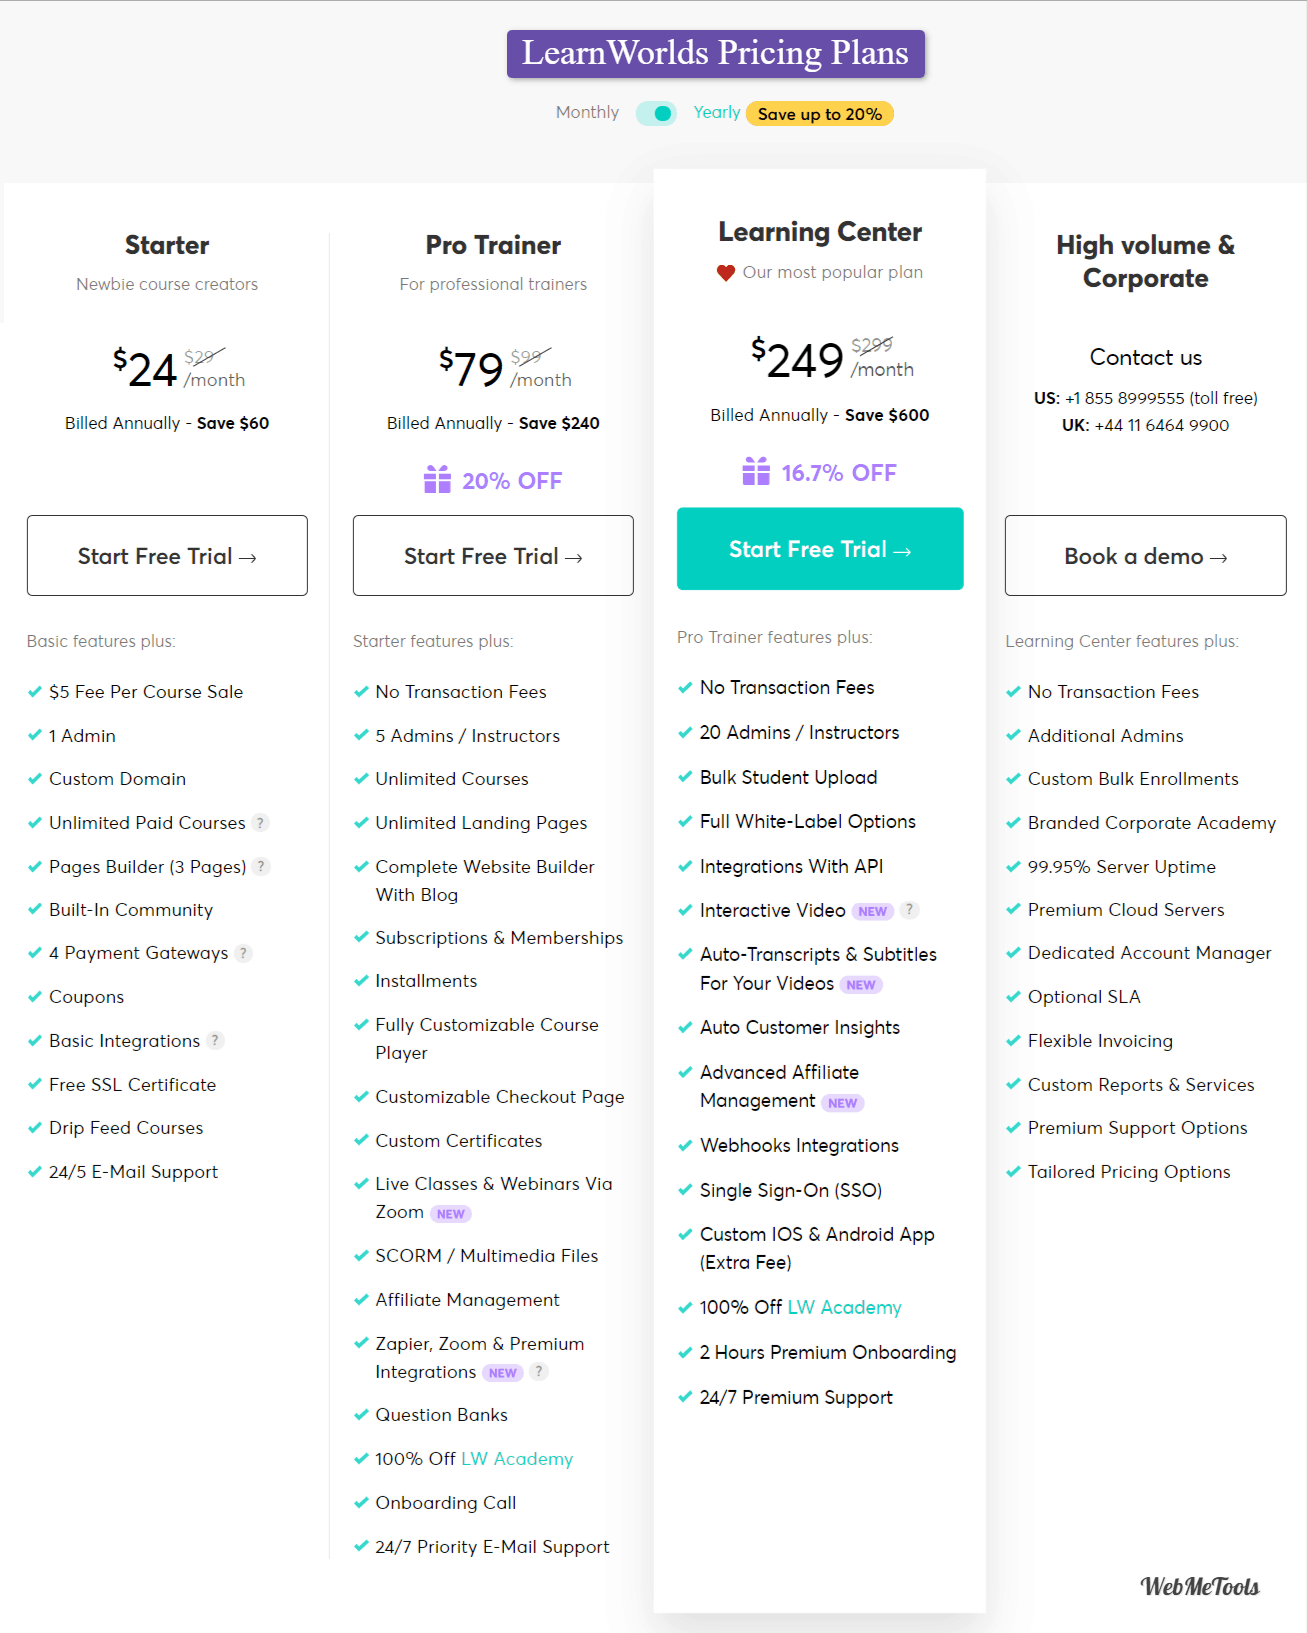 LearnWorlds Pricing Plans